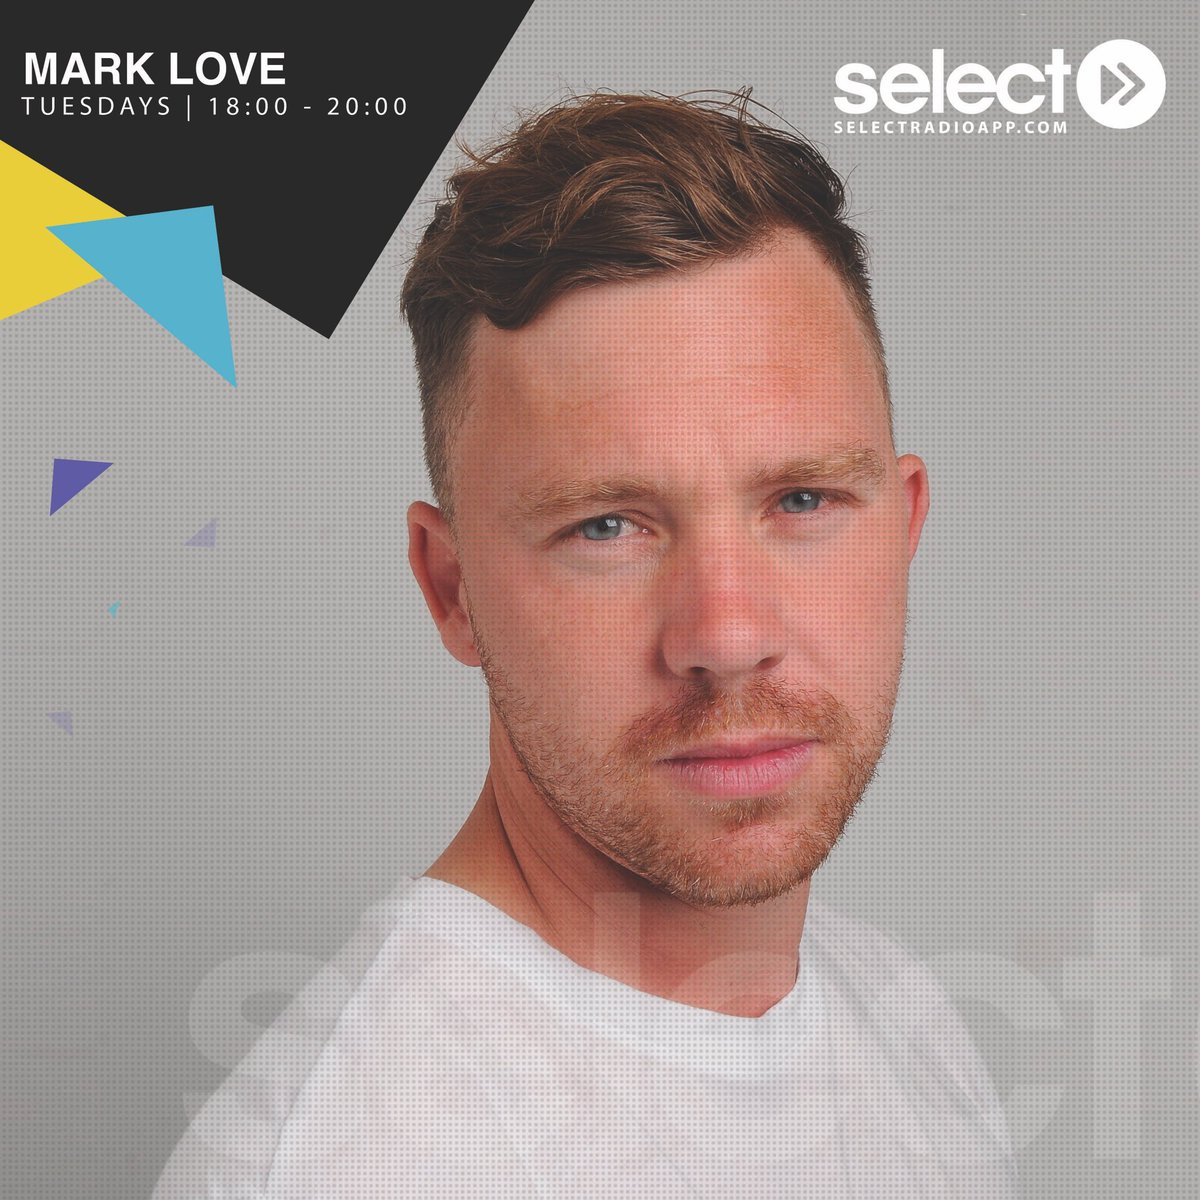 #AtticusIndepand  RT @MarkLoveLawson: #HouseMusic At It&#39;s best from me tonight #Summer #ibiza2017 Sounds<br>http://pic.twitter.com/Z1aoUoTthO